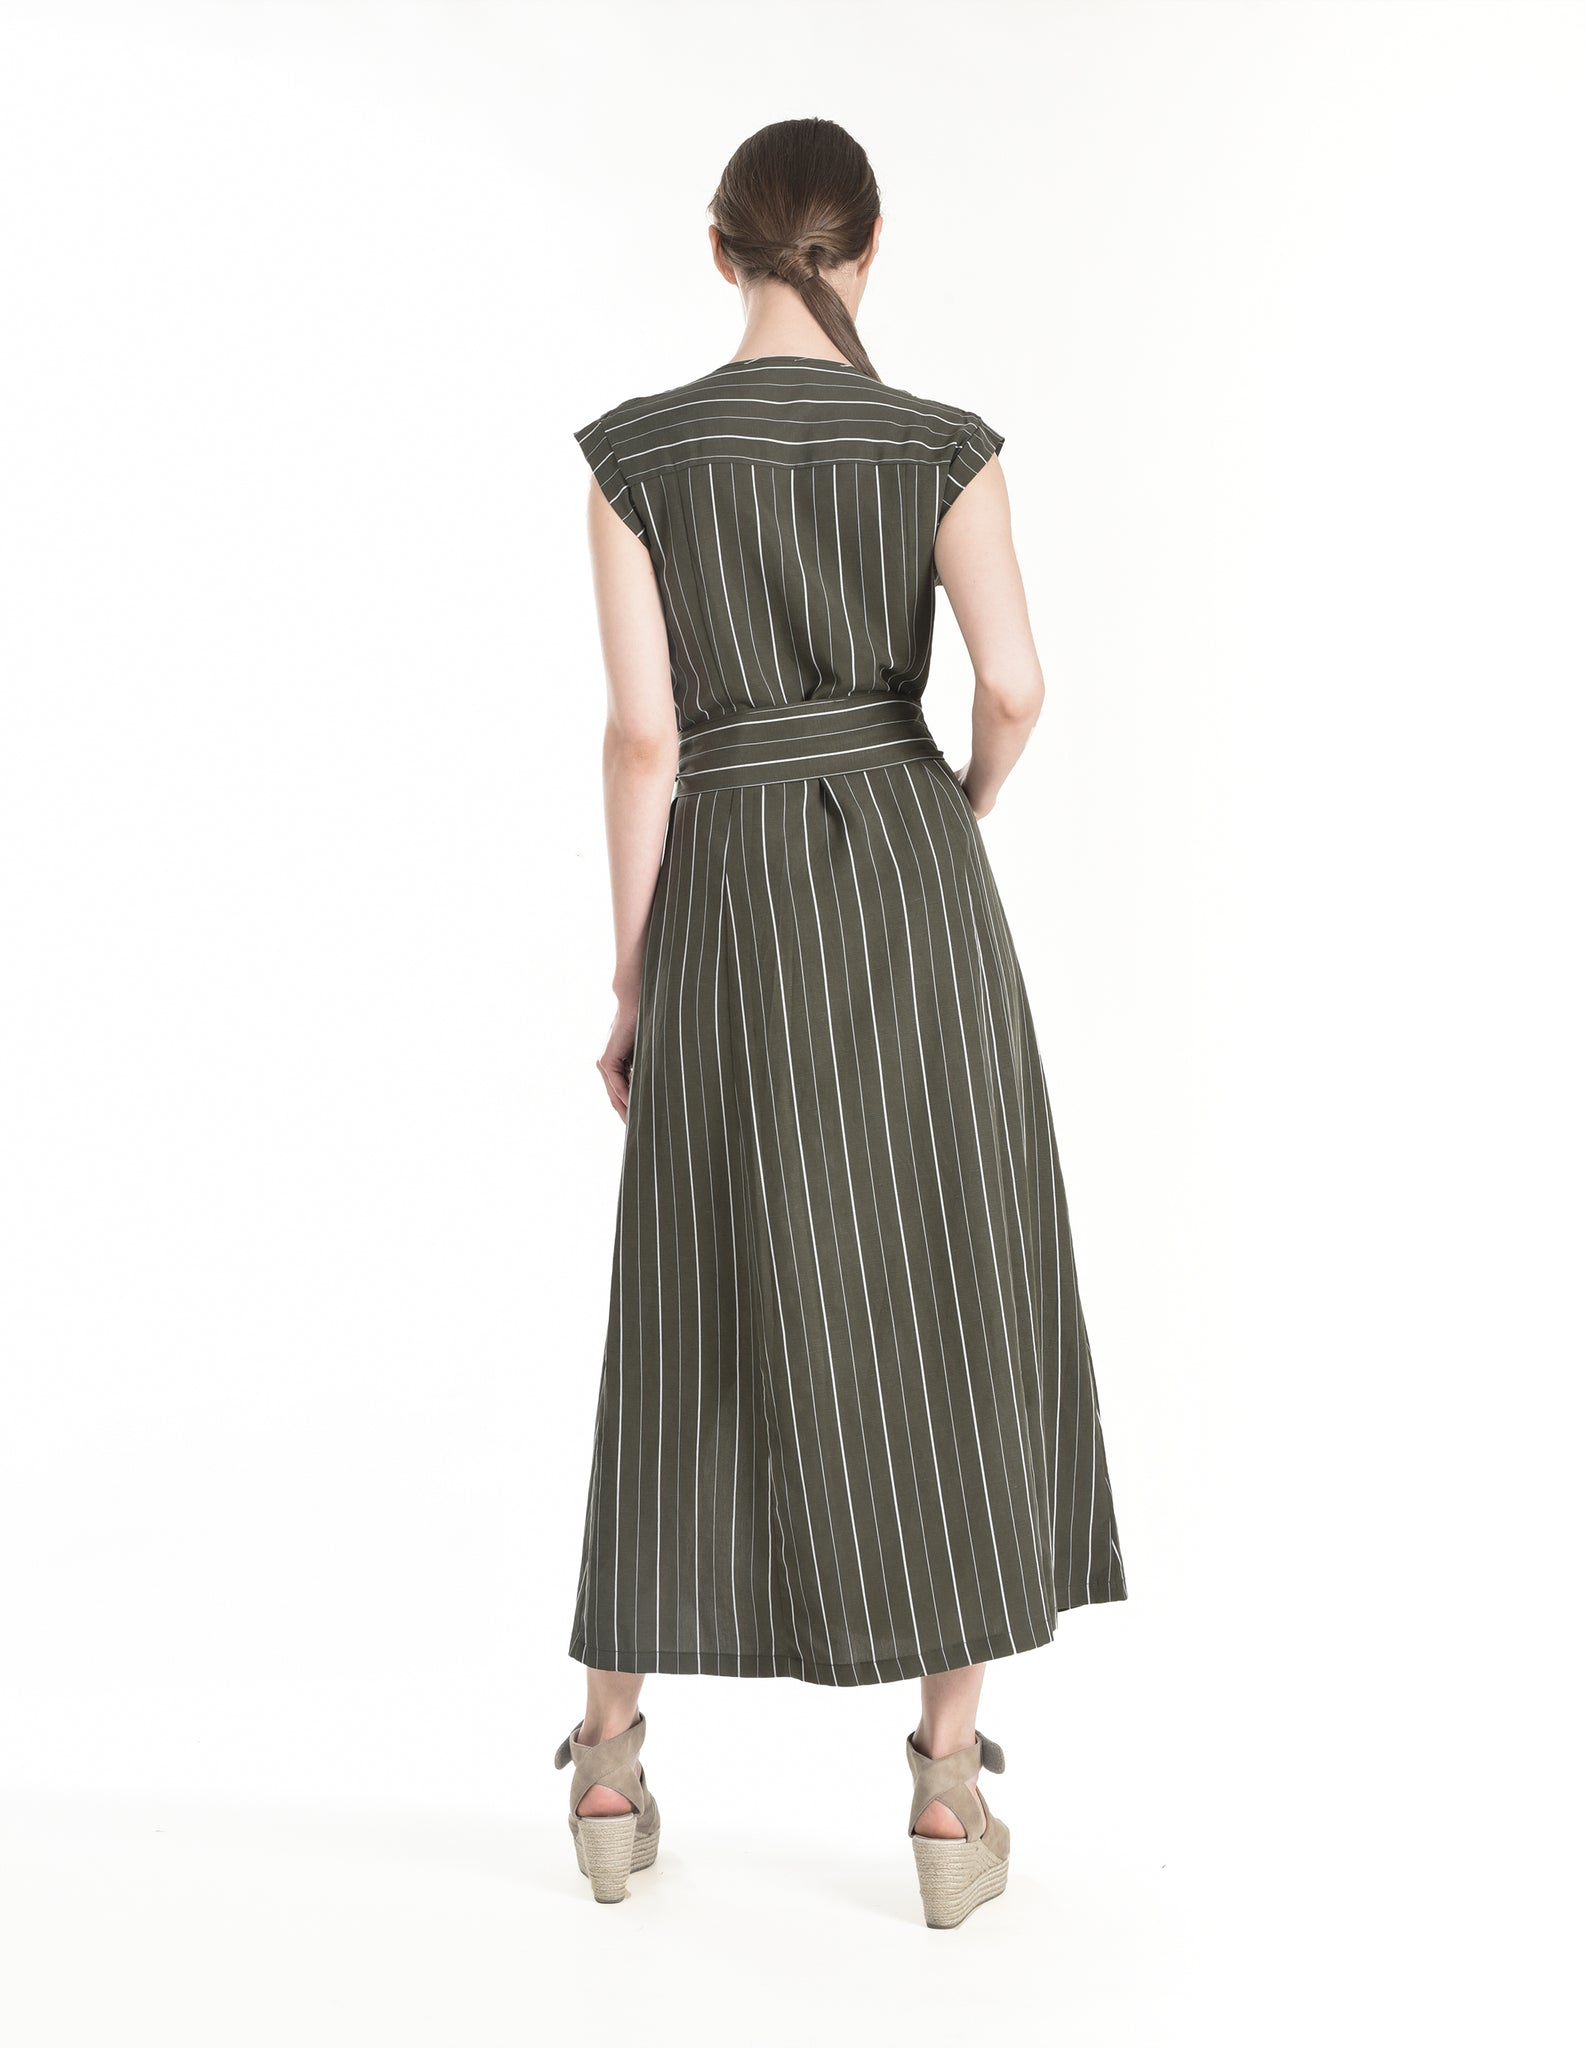 Gretta Dress in Khaki Stripe